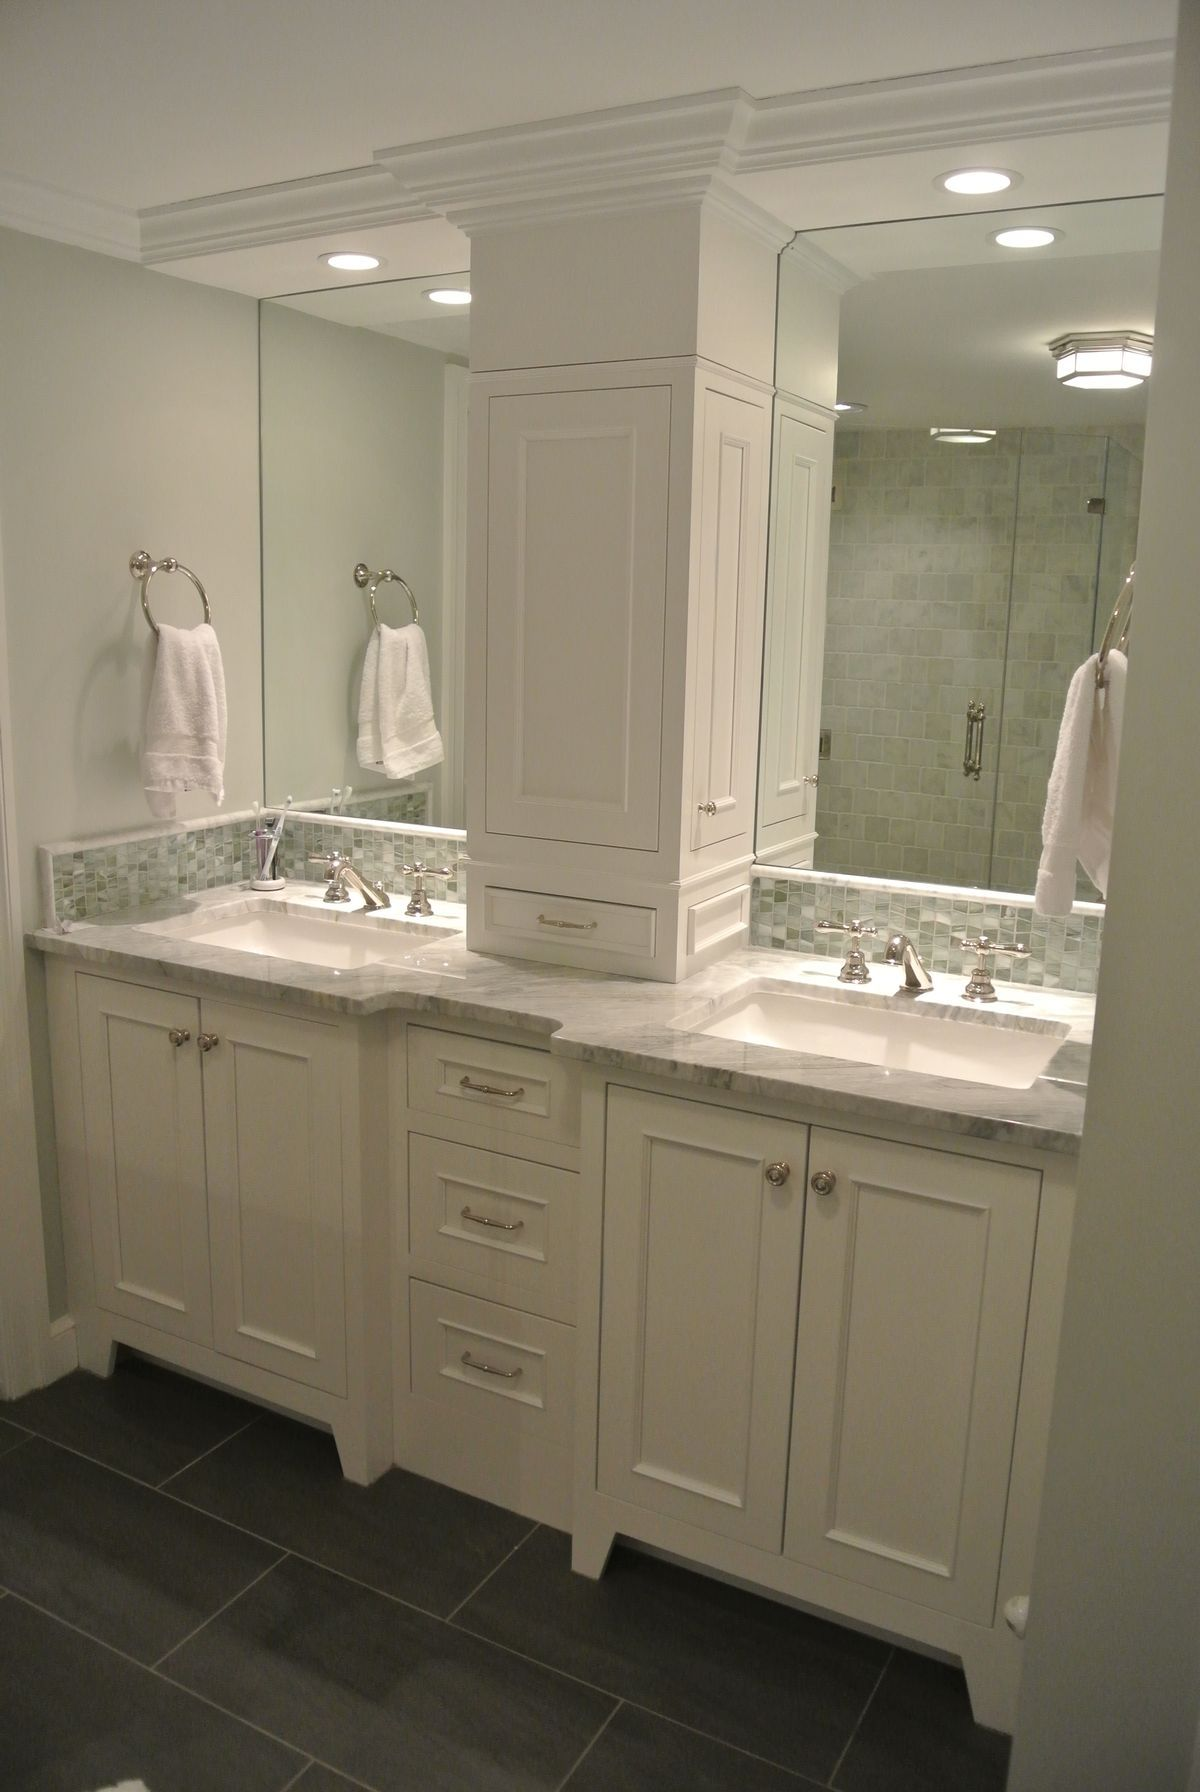 18 Deep Bathroom Vanity Ikea Bathroom Vanities: A Linen Closet On The Countertop